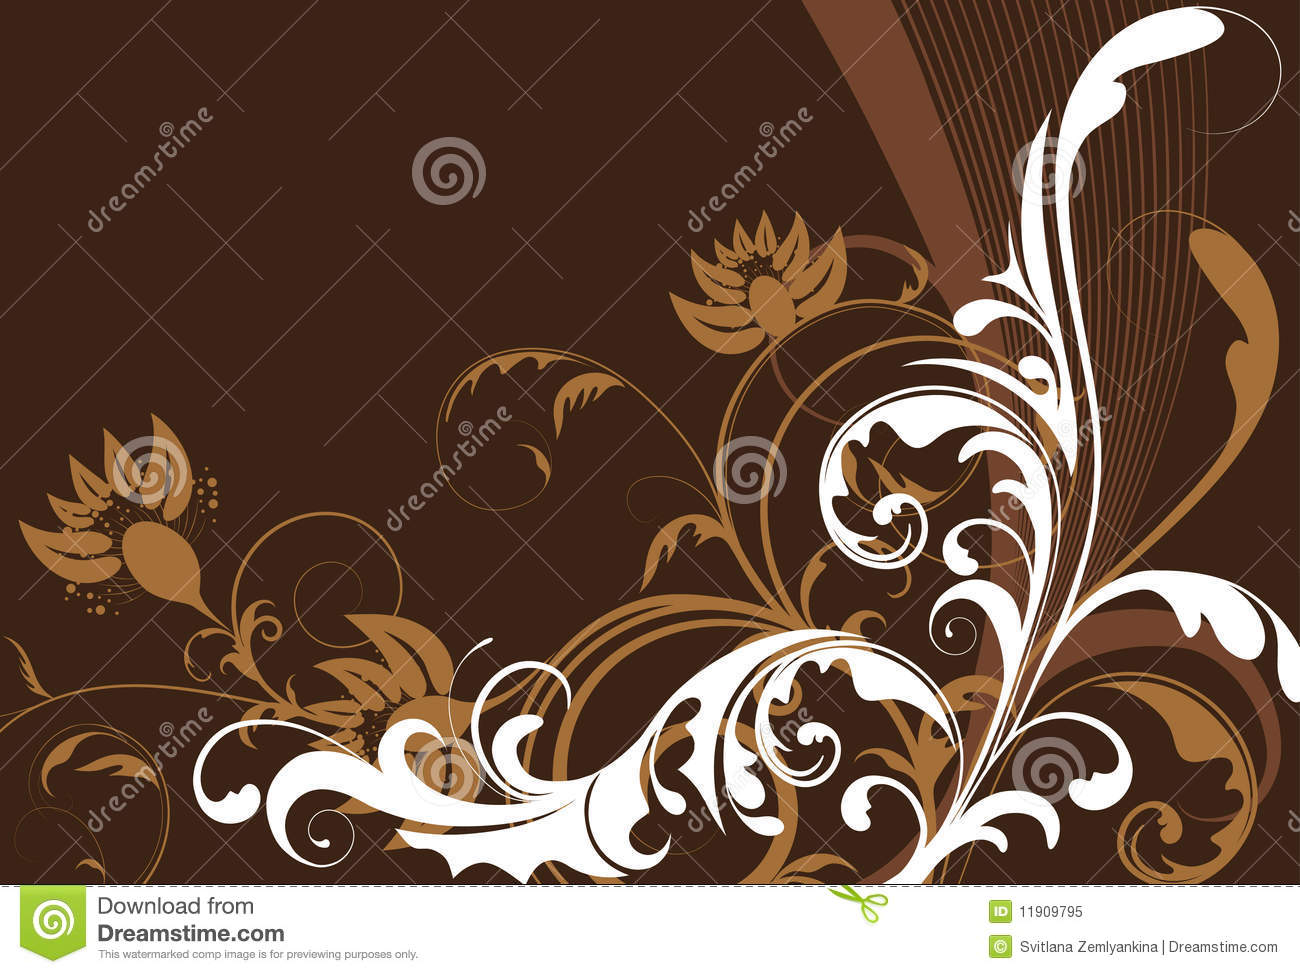 White flowers on brown background stock vector illustration of white flowers on brown background mightylinksfo